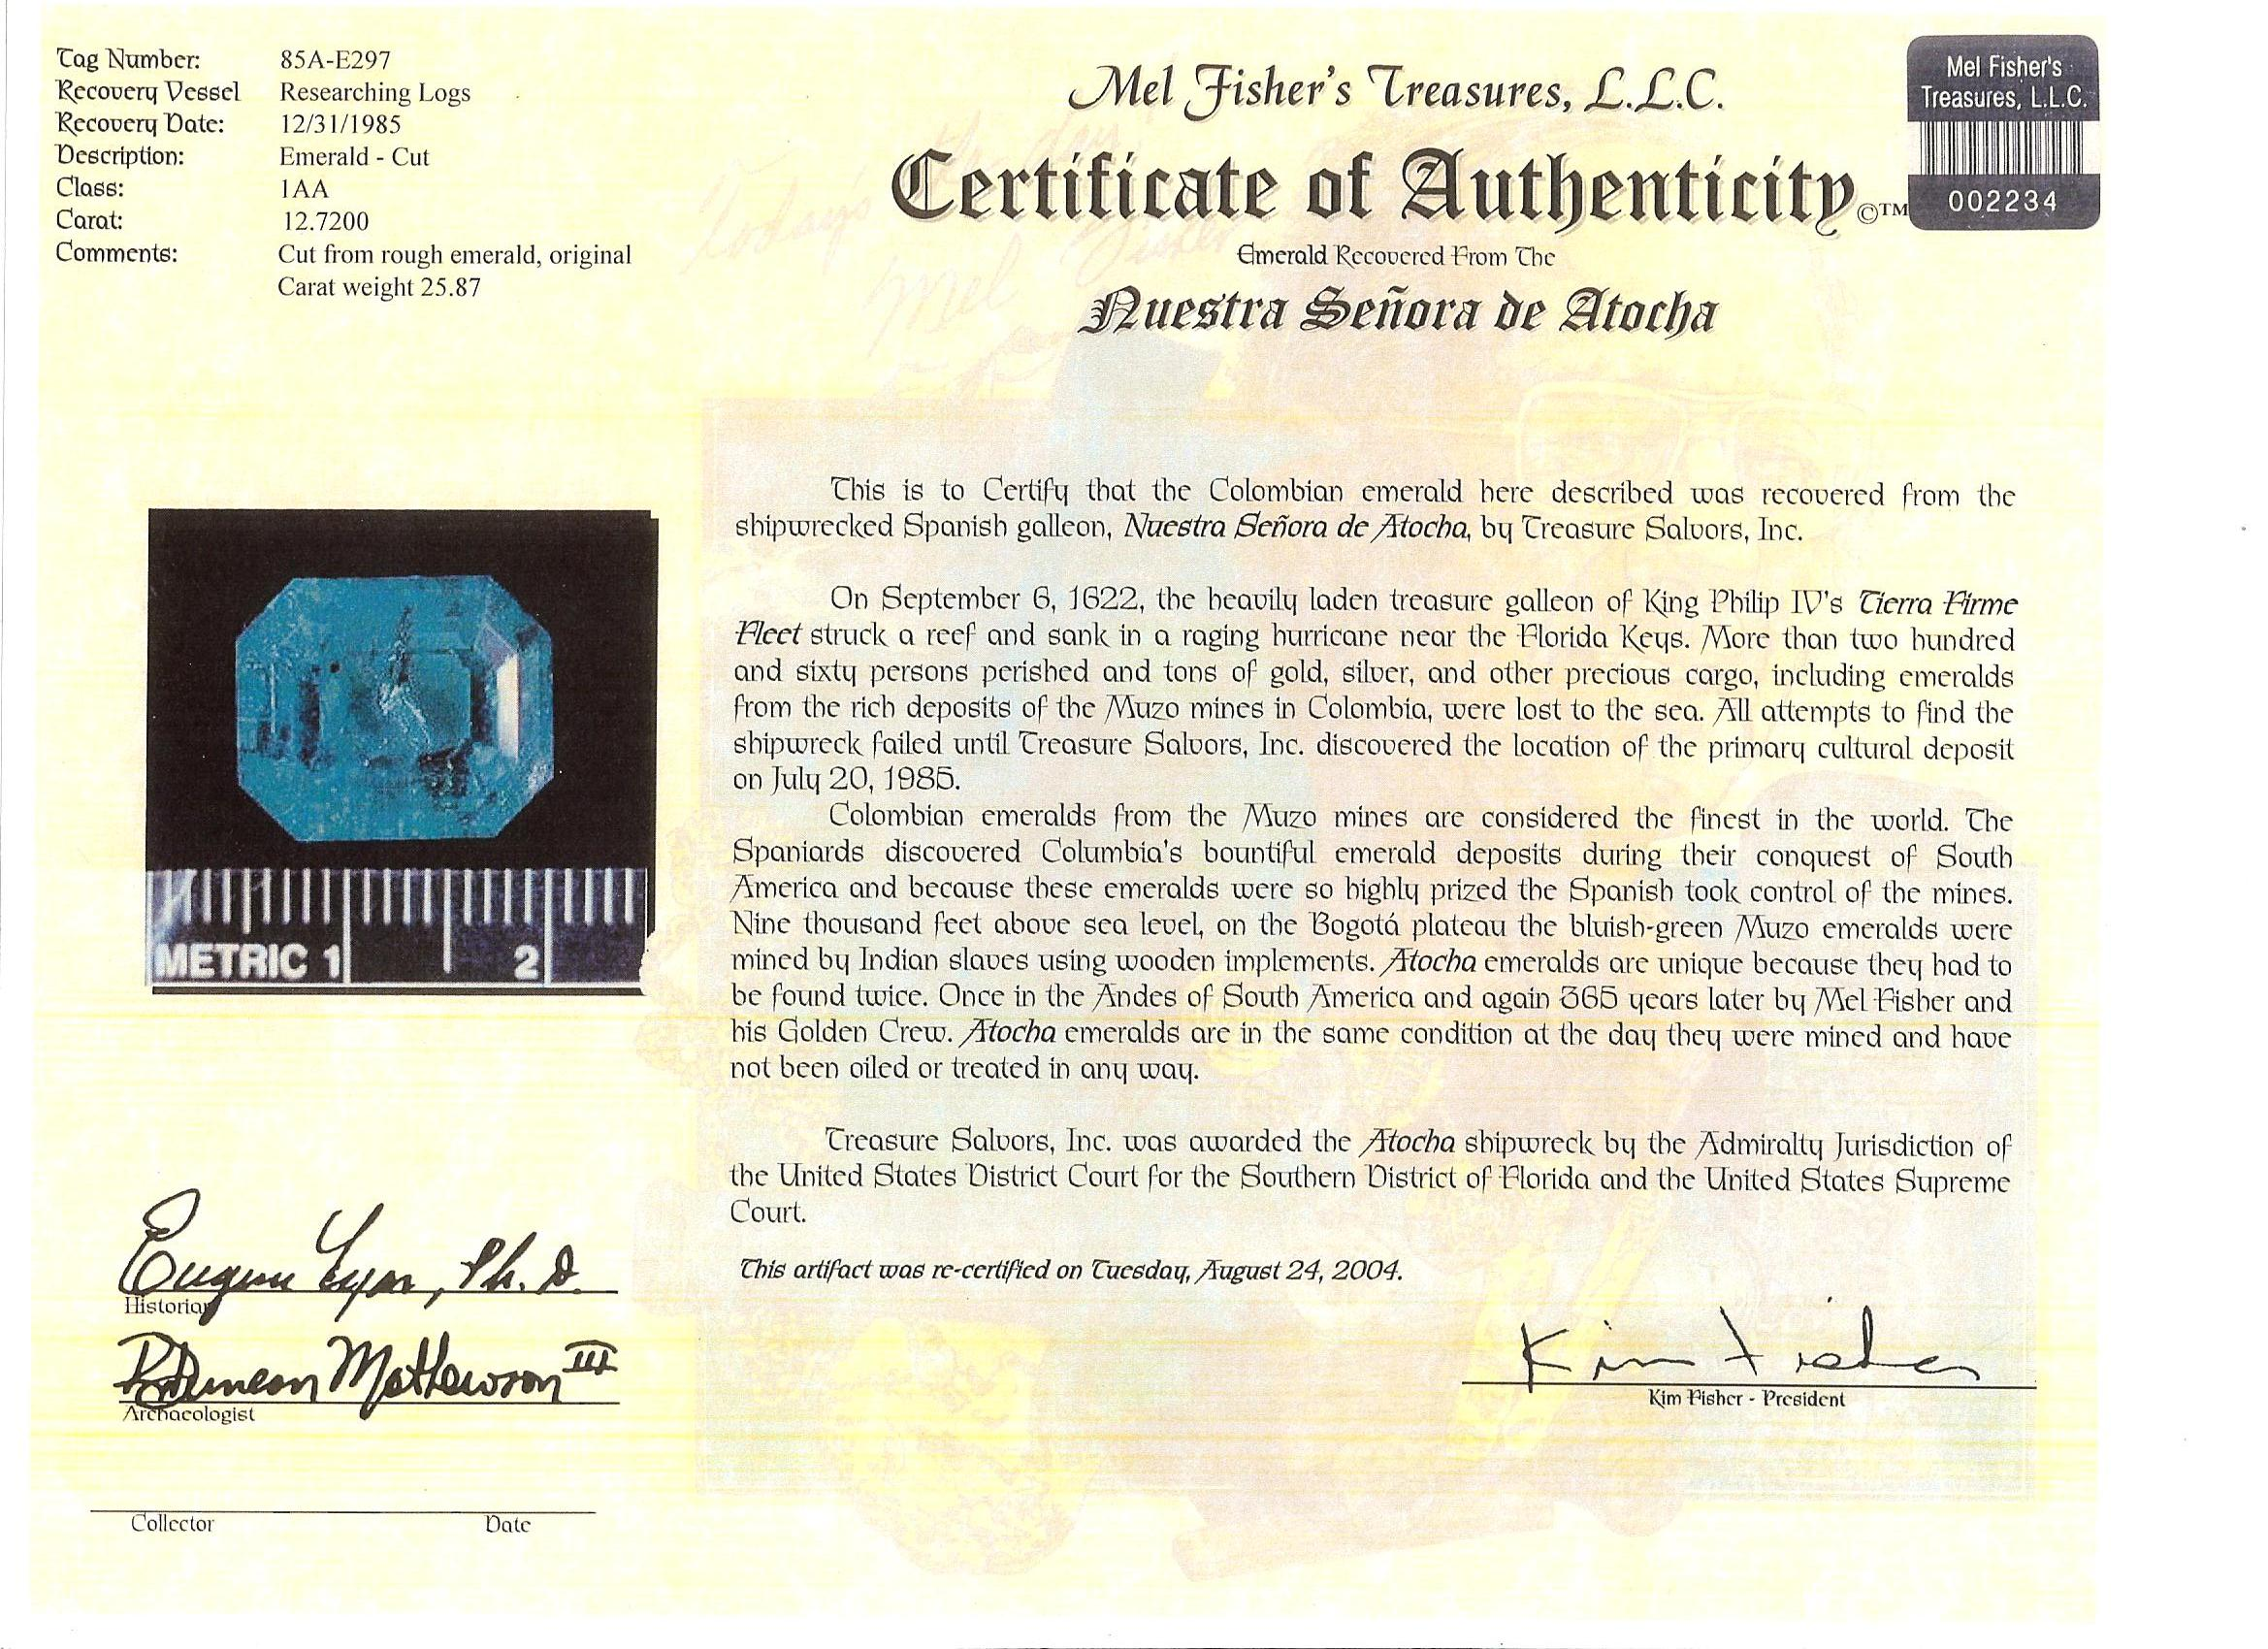 diamond certificate of authenticity template - the maltese falcon meets five million dollar solid gold